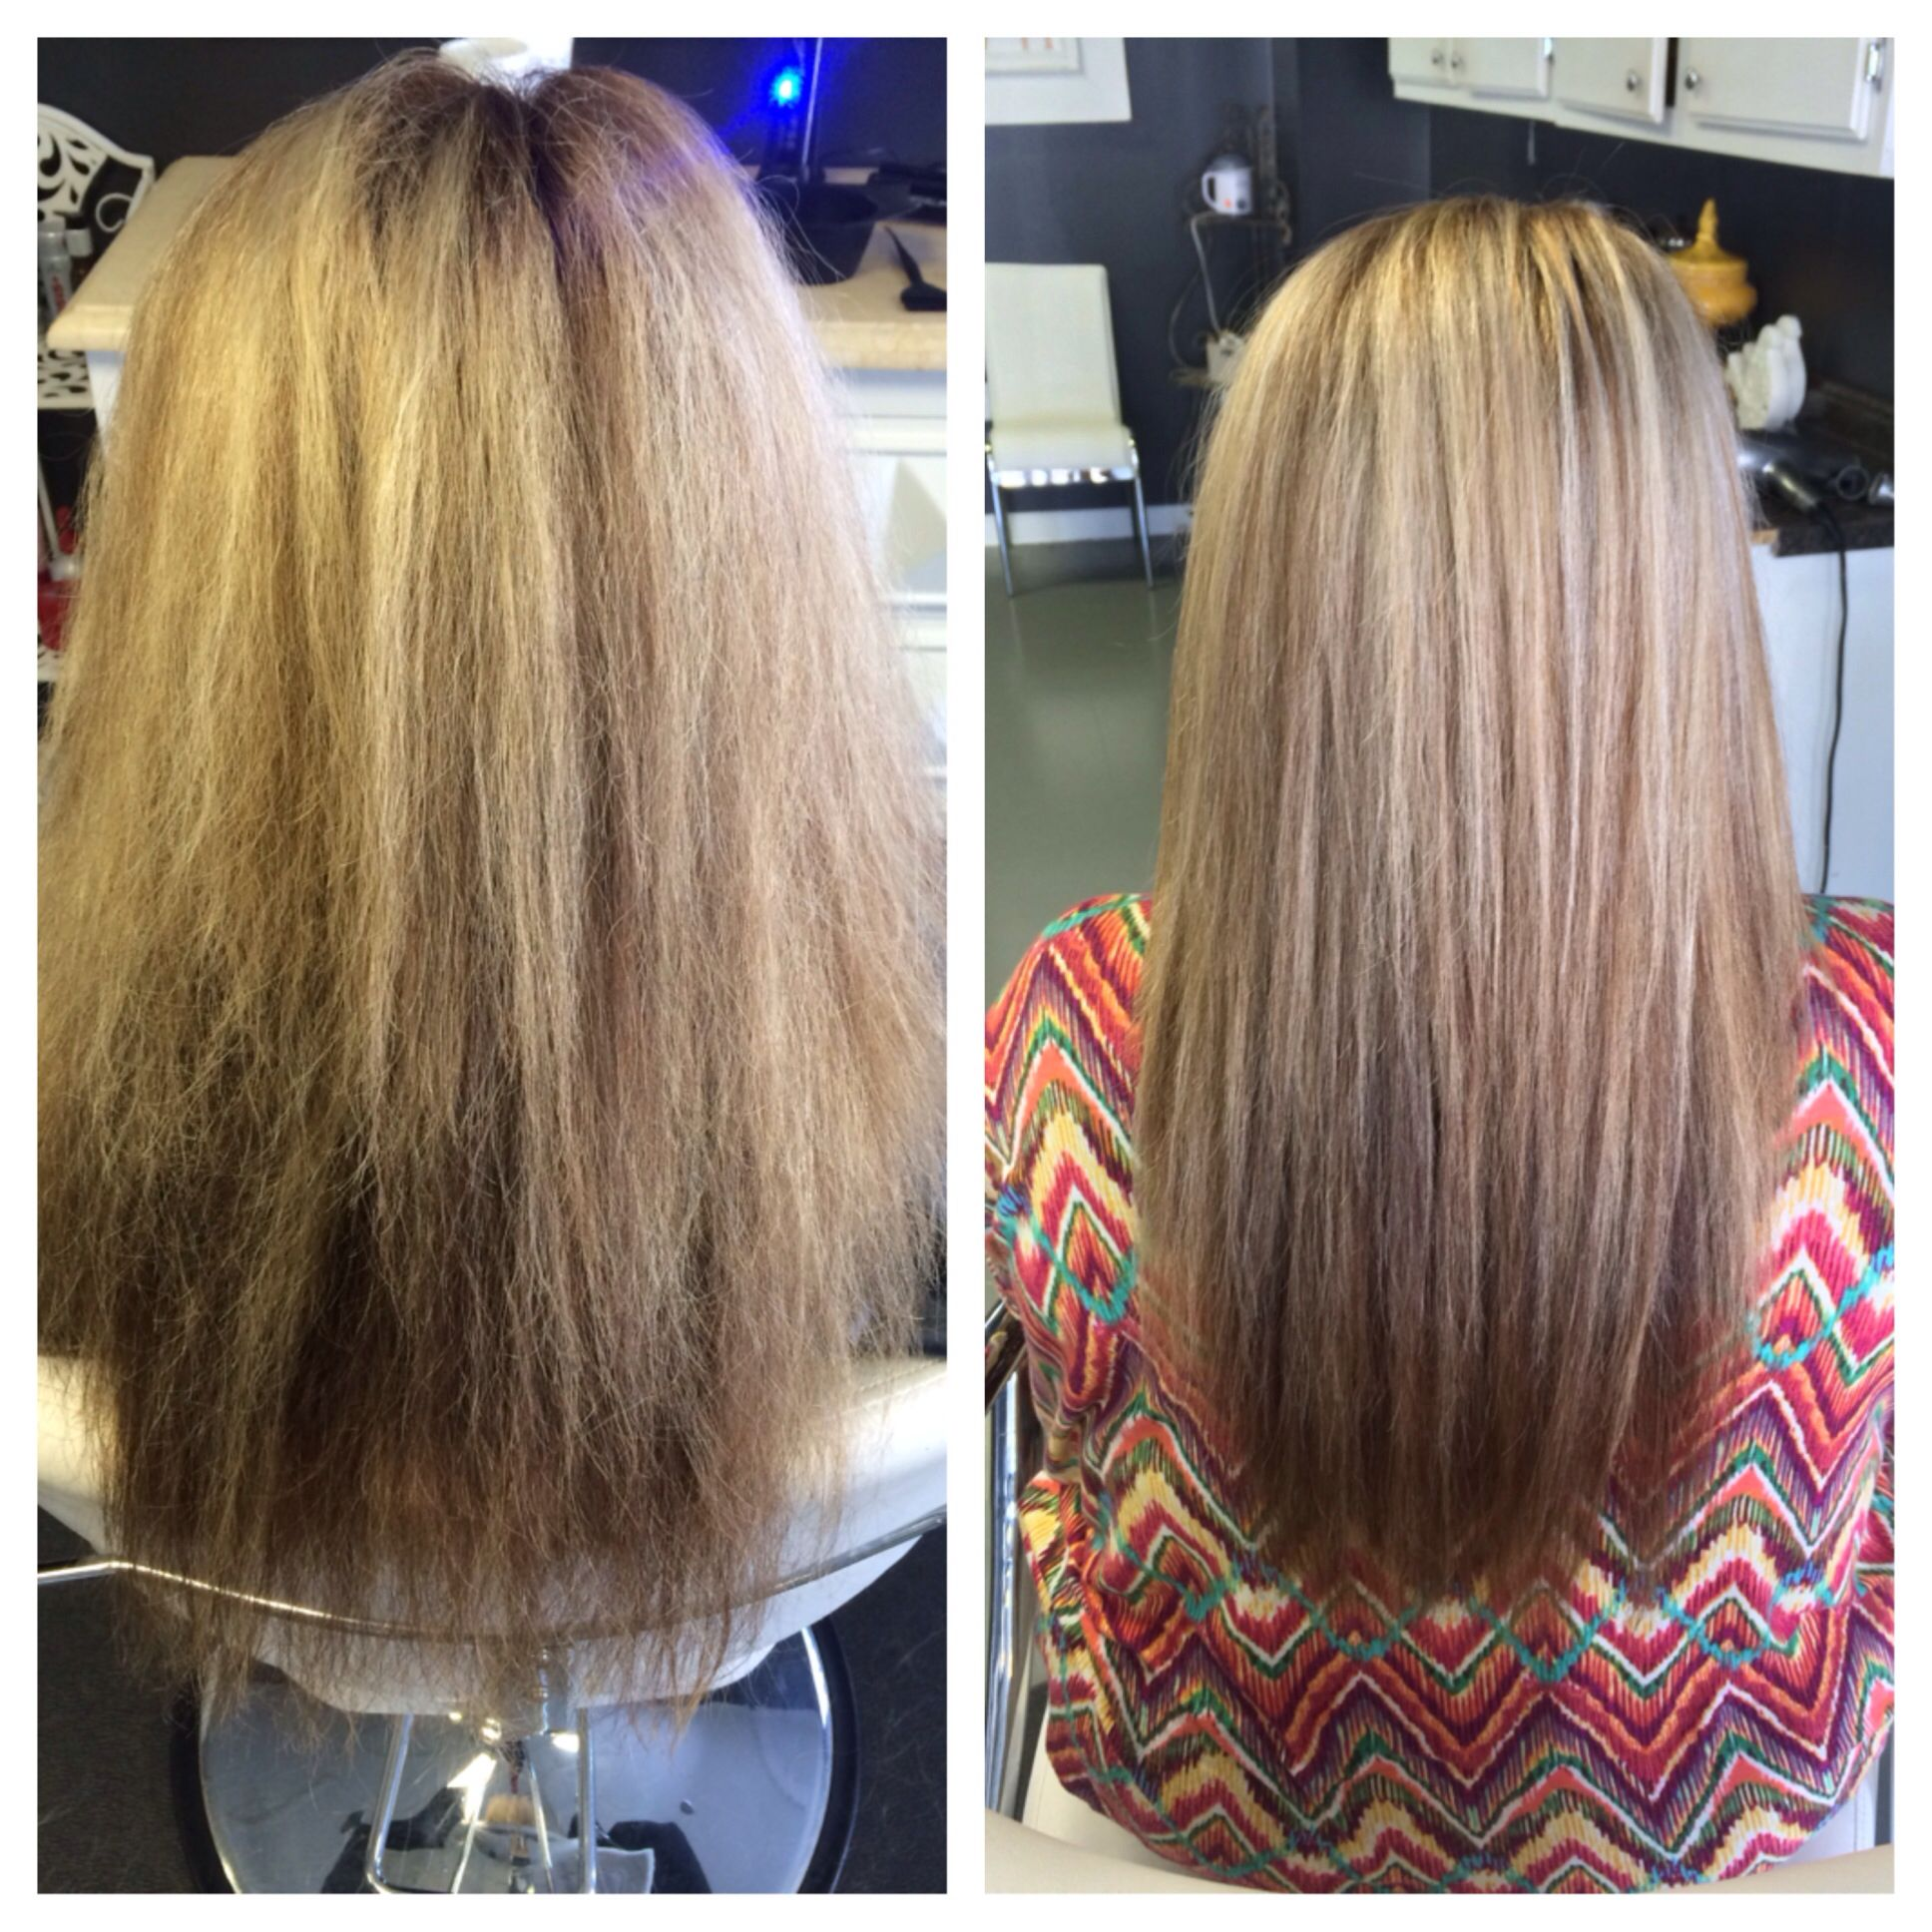 Agave Smoothing Treatment! Reduces Frizz & Makes Hair More